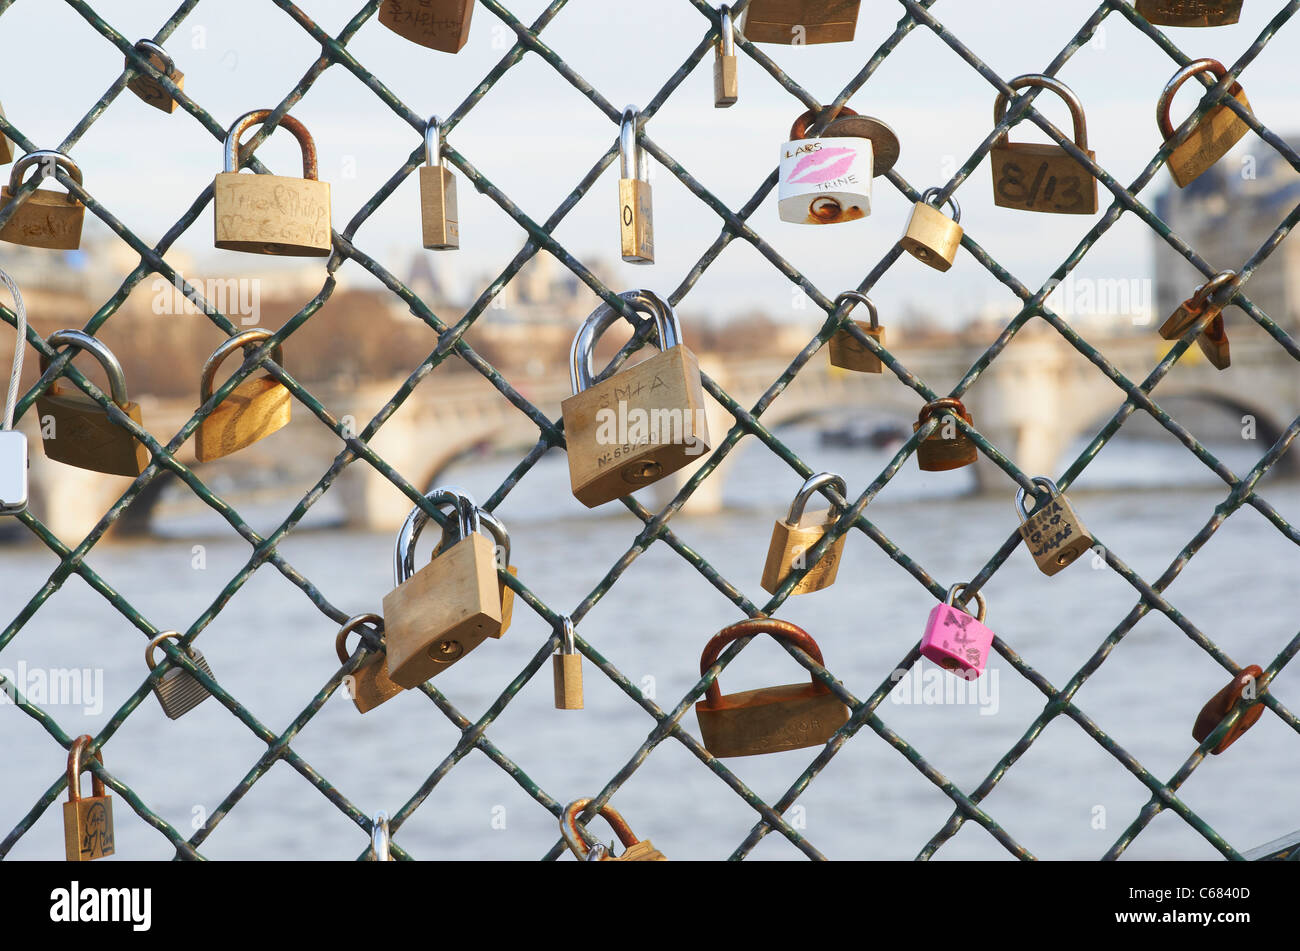 Chain On Wall Stockfotos & Chain On Wall Bilder - Alamy